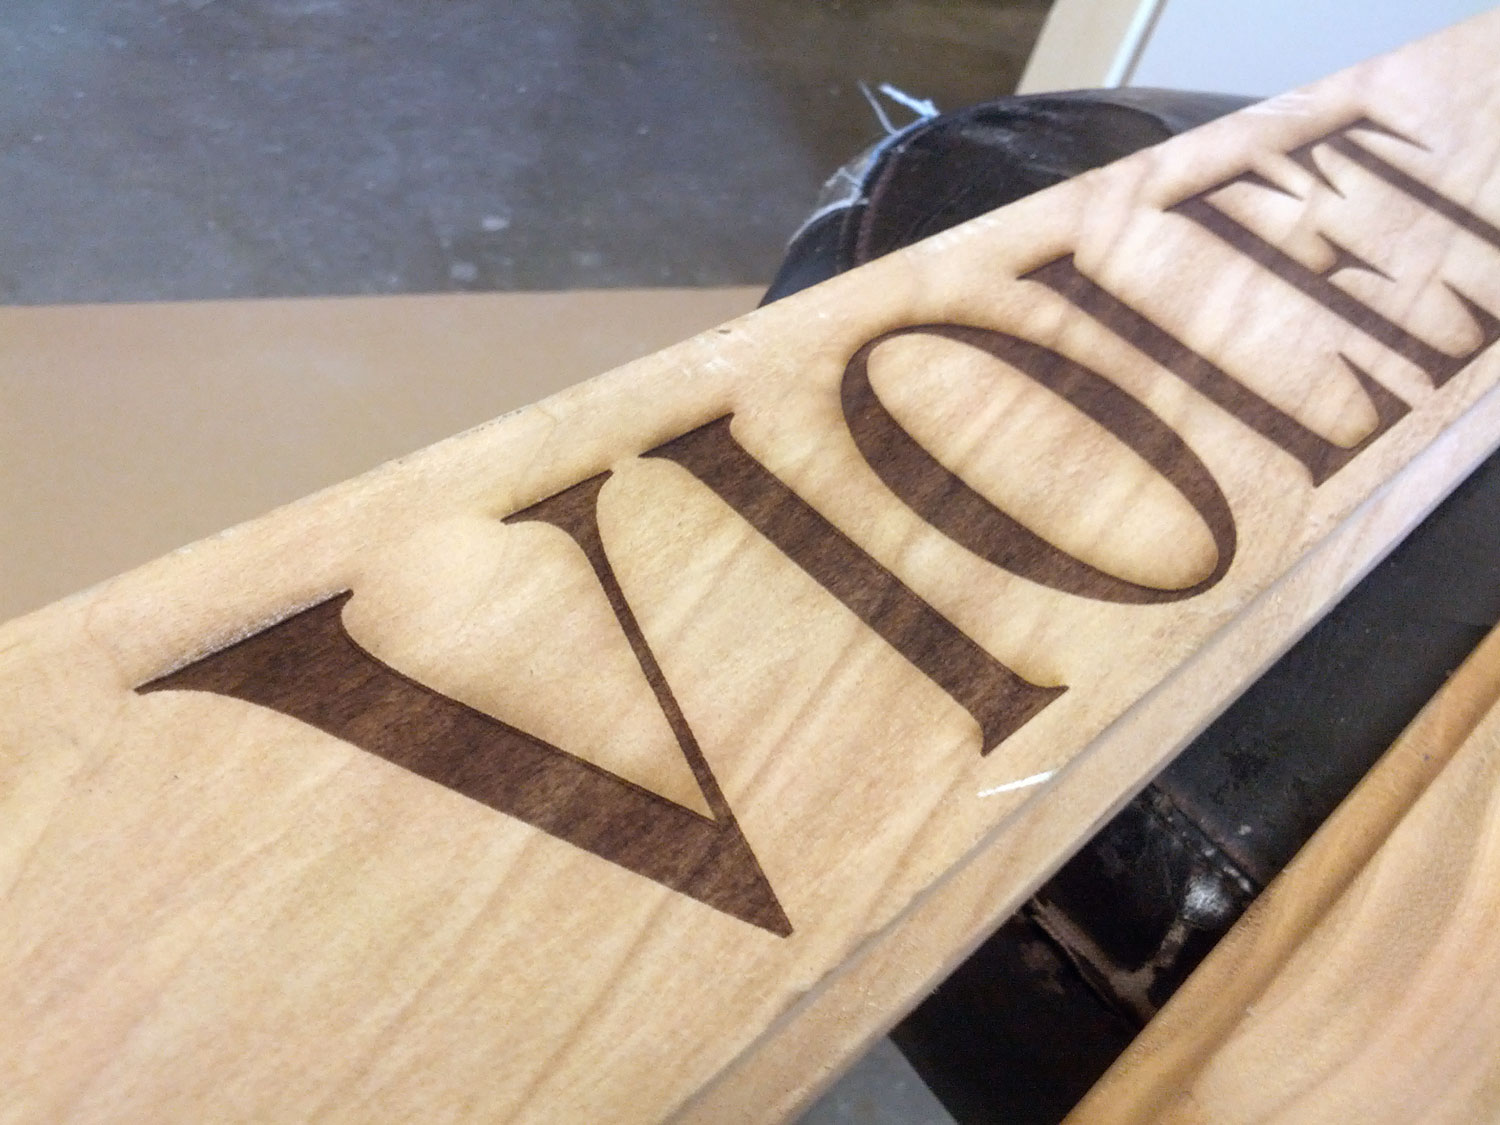 EXPERIMENTING WITH LASER ETCHING